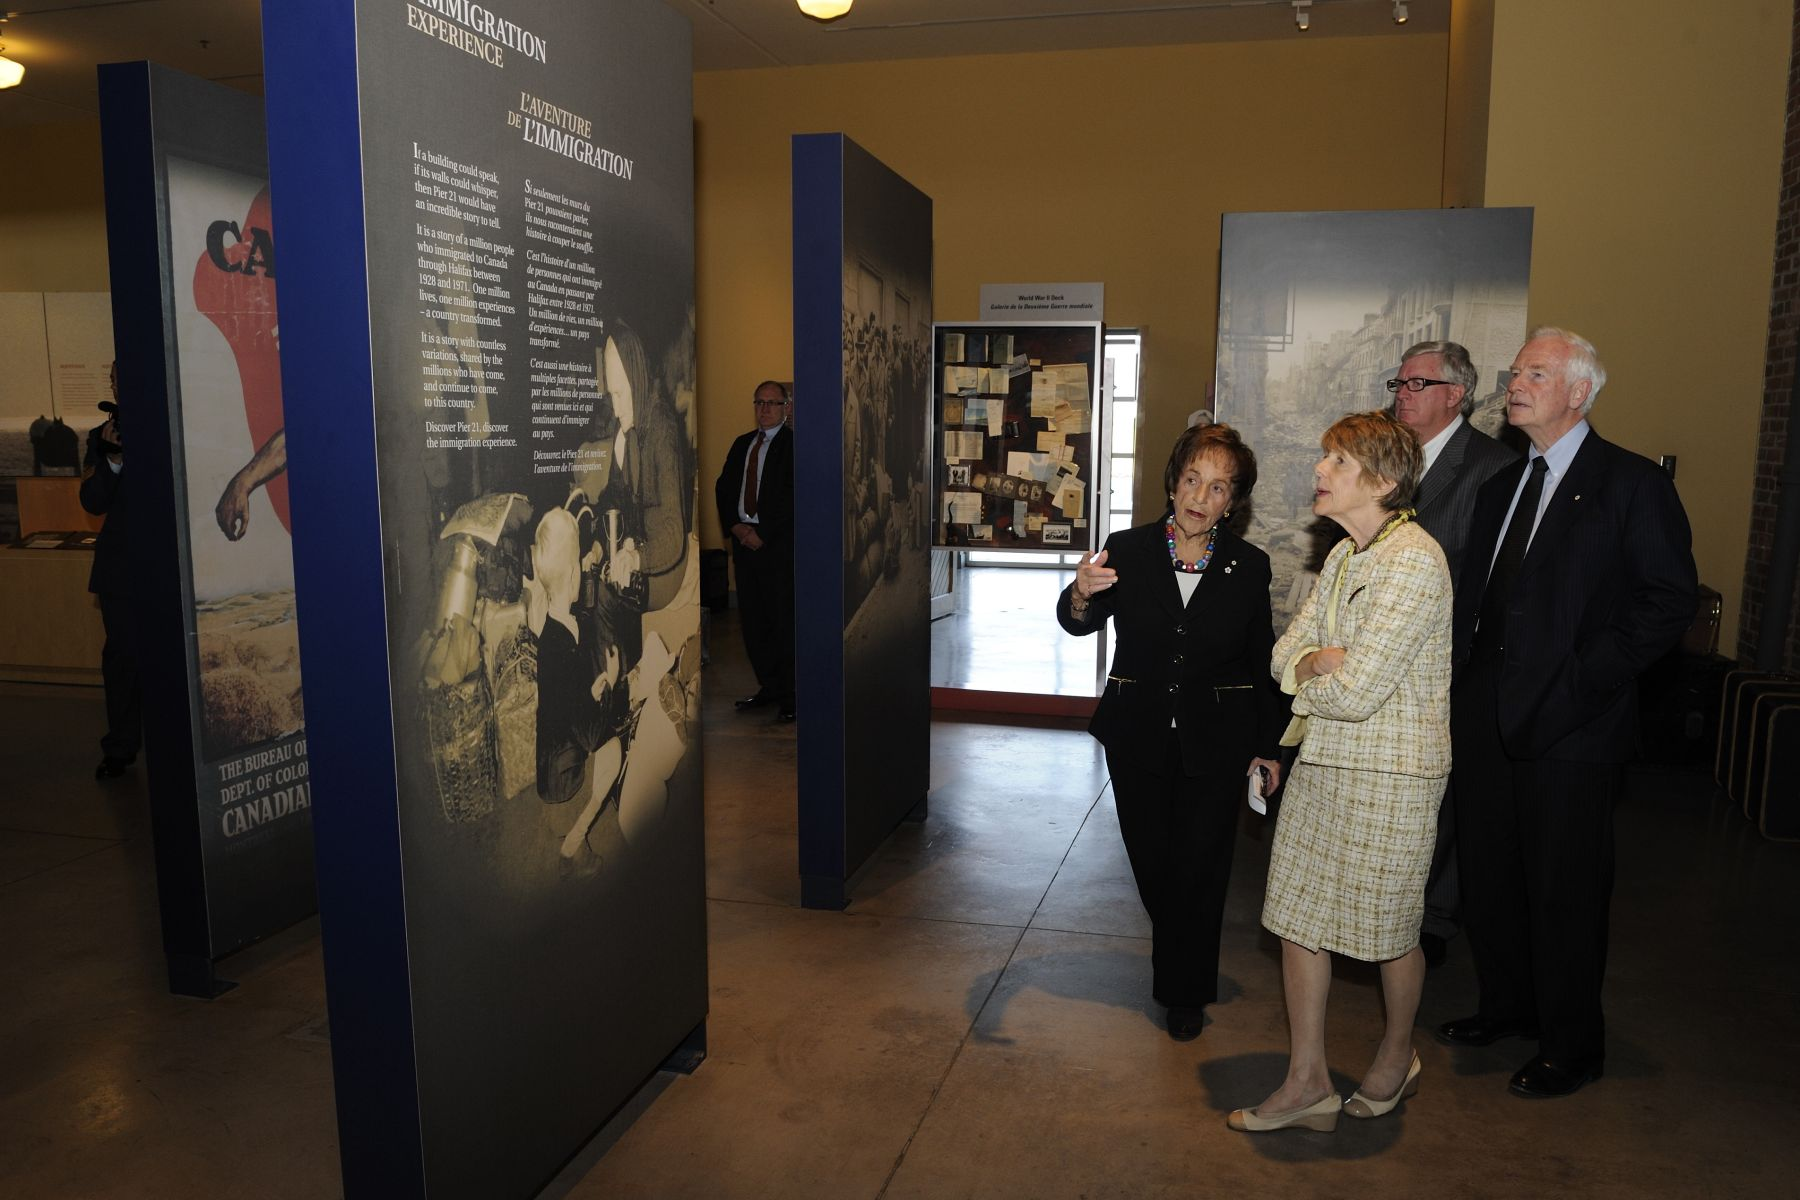 Their Excellencies also visited the Canadian Museum of Immigration at Pier 21. They were greeted by a members of the museum's board of trustees, Mrs. Ruth Goldbloom, and Mr. John Oliver.